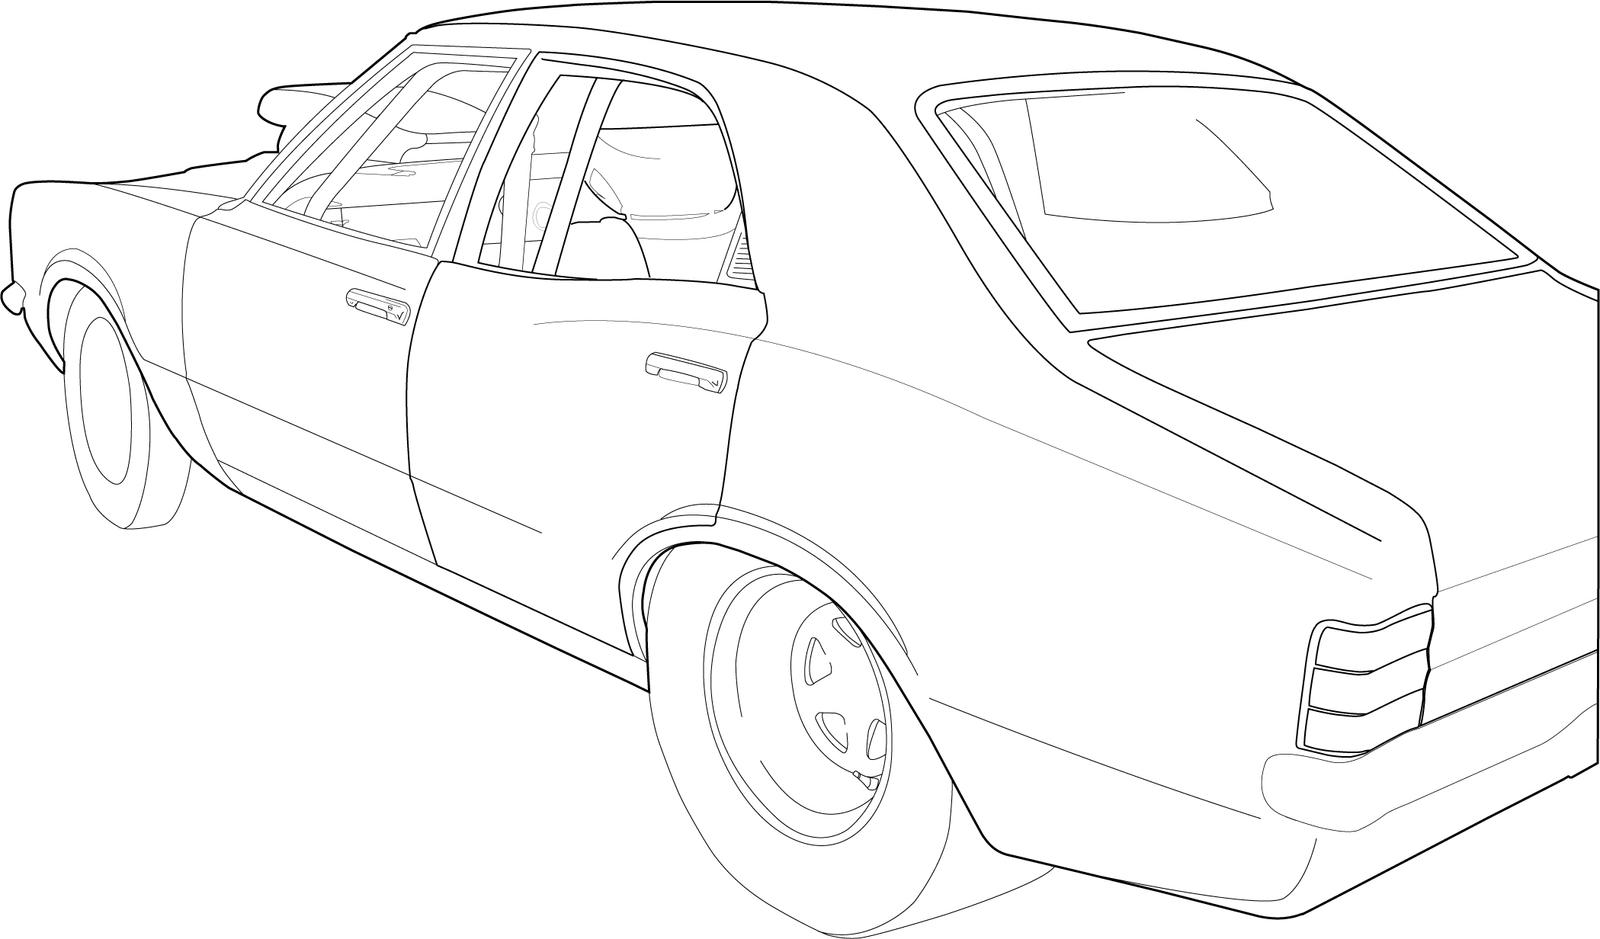 Cortina Line Drawing By Stevezdesigns On Deviantart